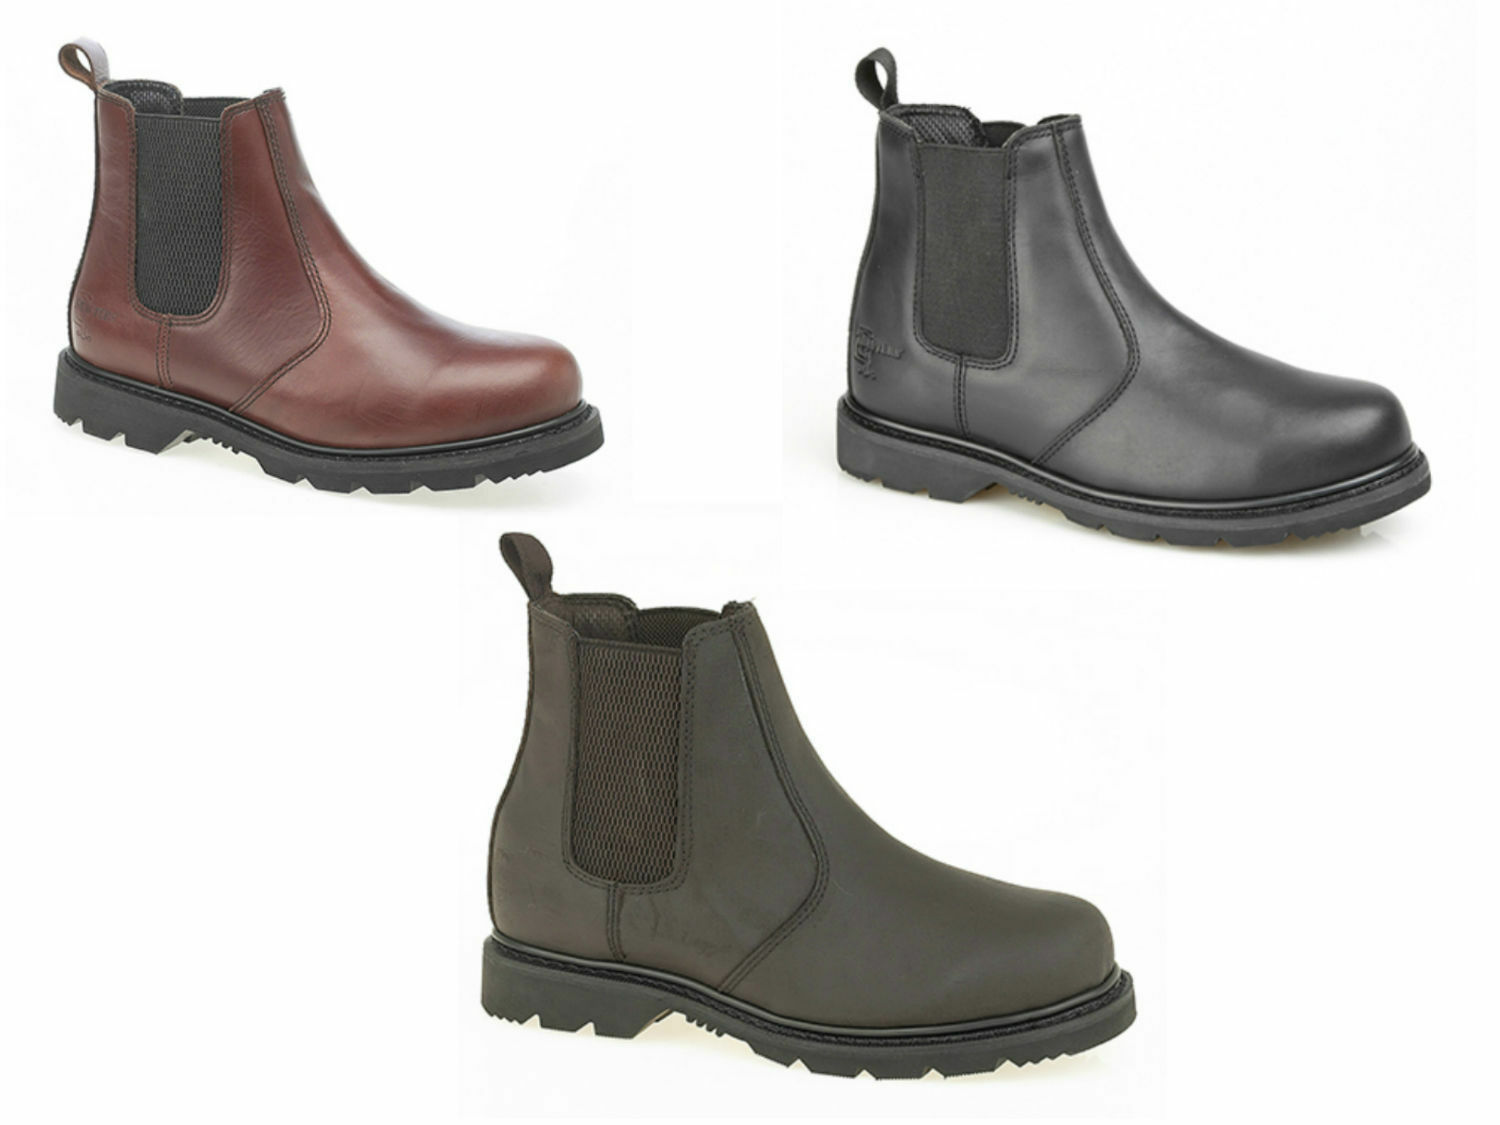 Mens BOYS LEATHER Chelsea Dealer Taglie Boots. GOODYEAR la suola. Taglie Dealer 6-12UK 3e05ef